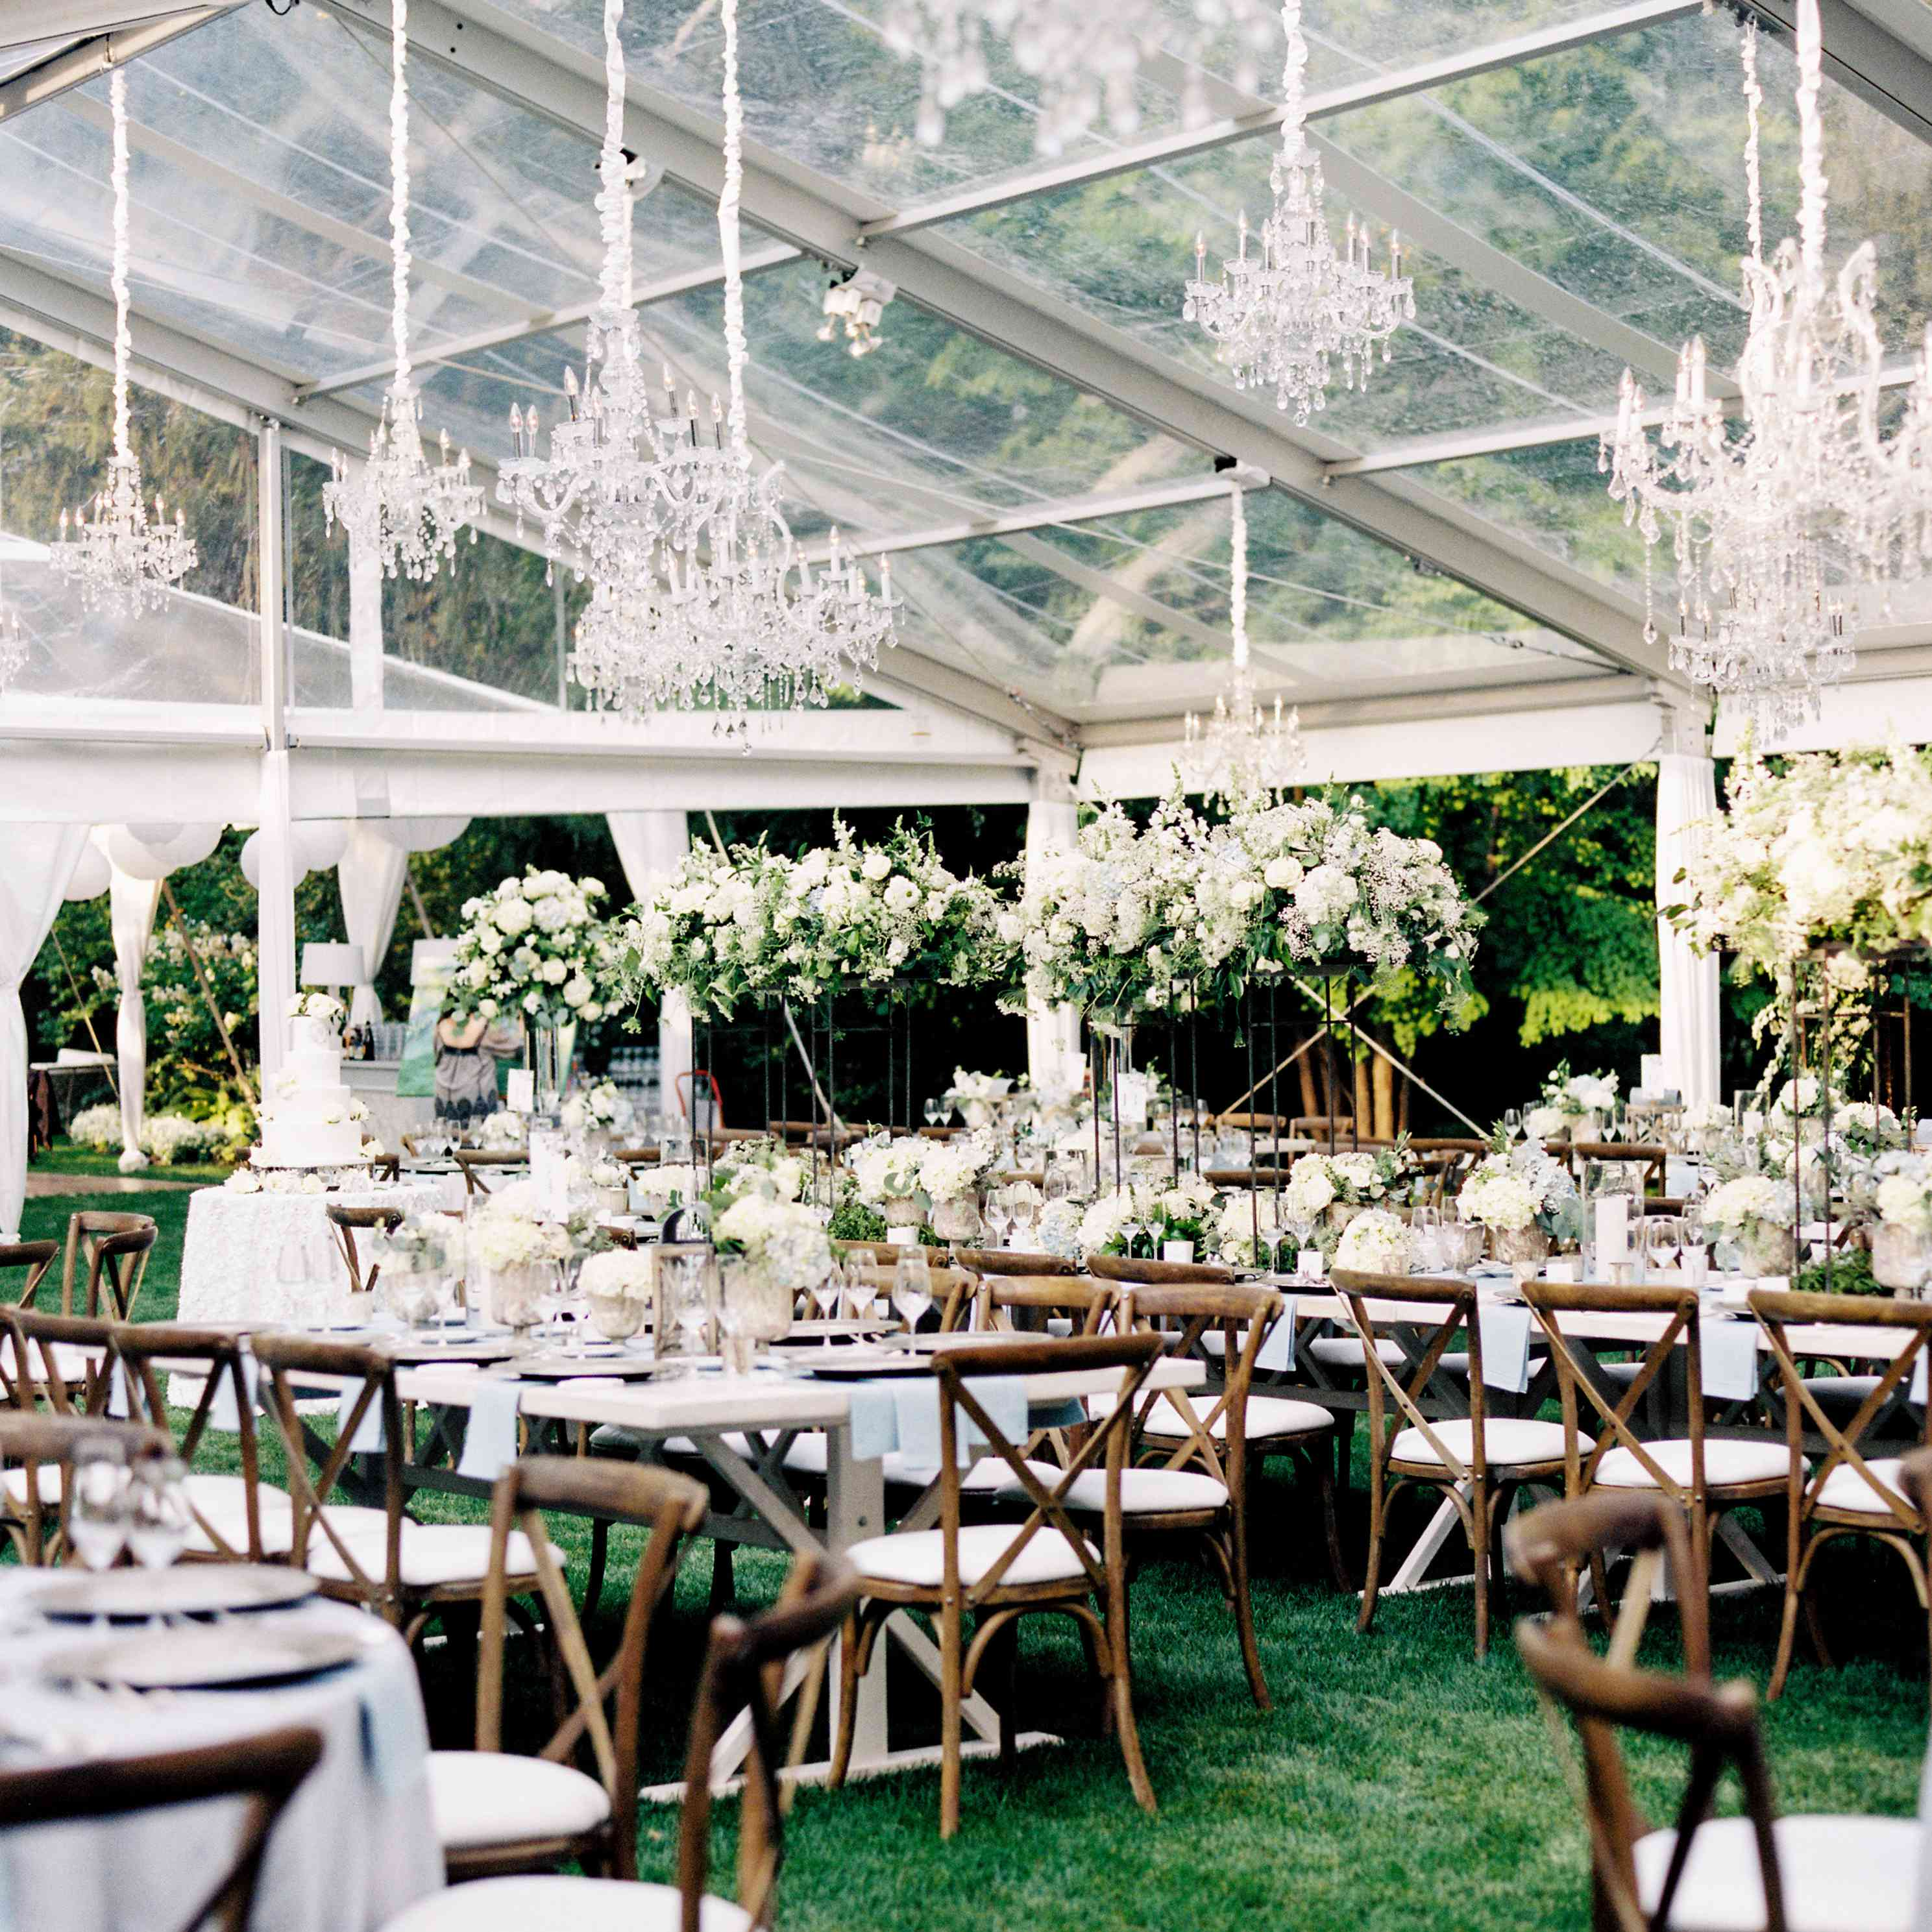 clear tent with chandeliers and wooden chairs